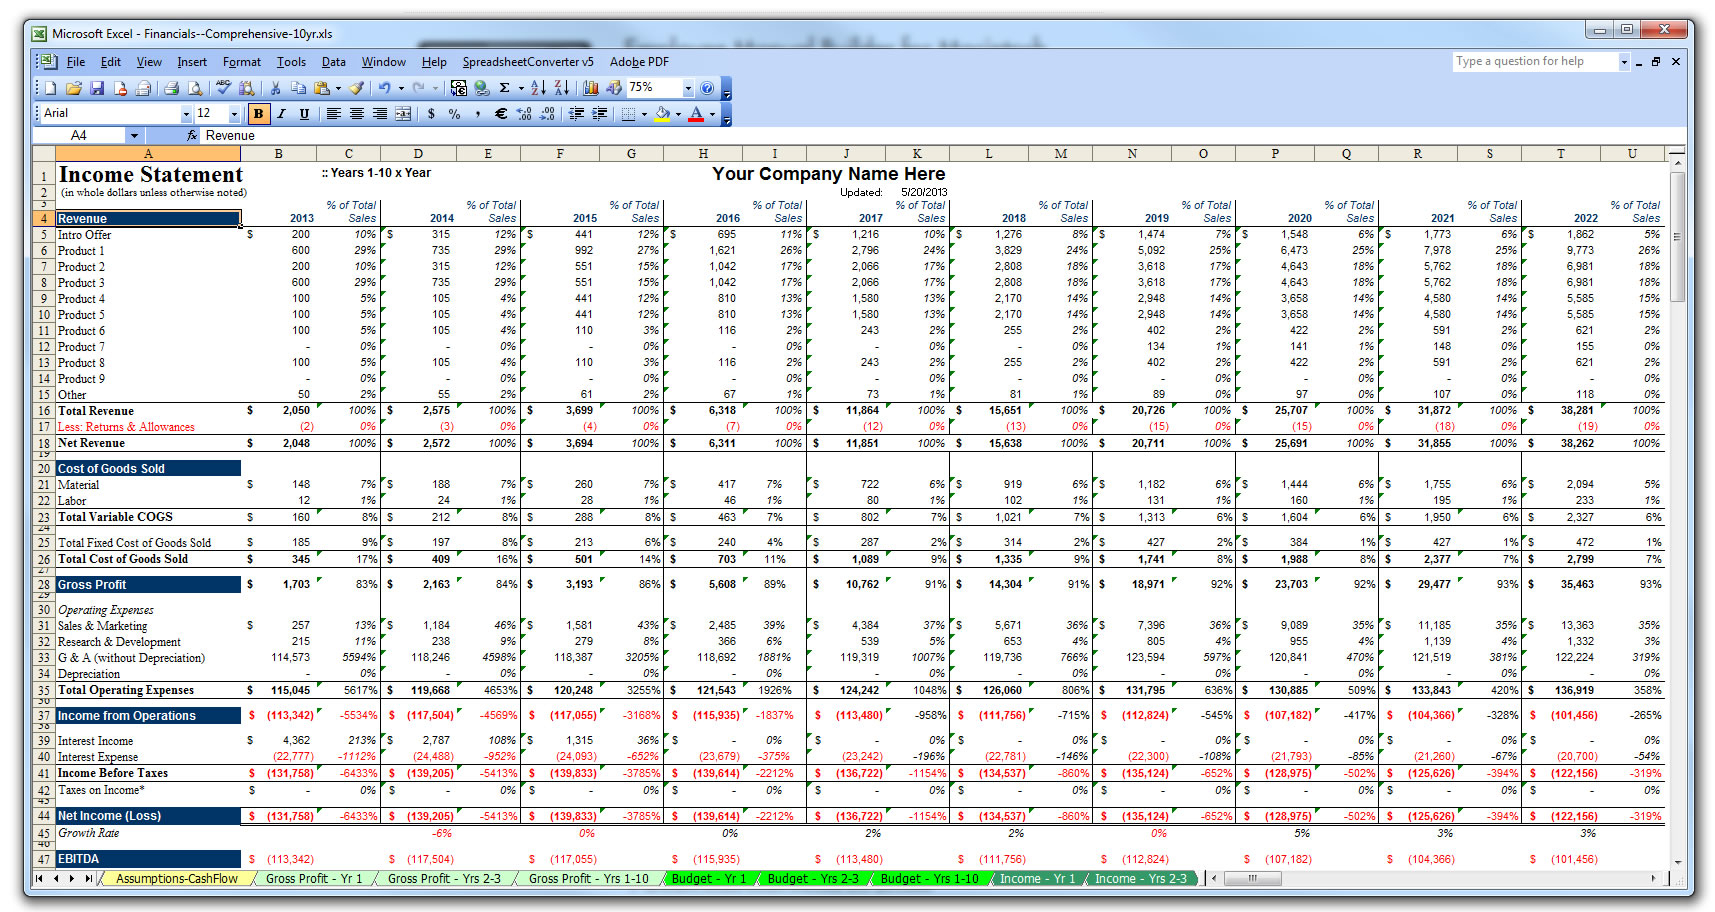 Business Plan Financial Template Excel Download   Resourcesaver With Business Plan Financial Template Excel Download